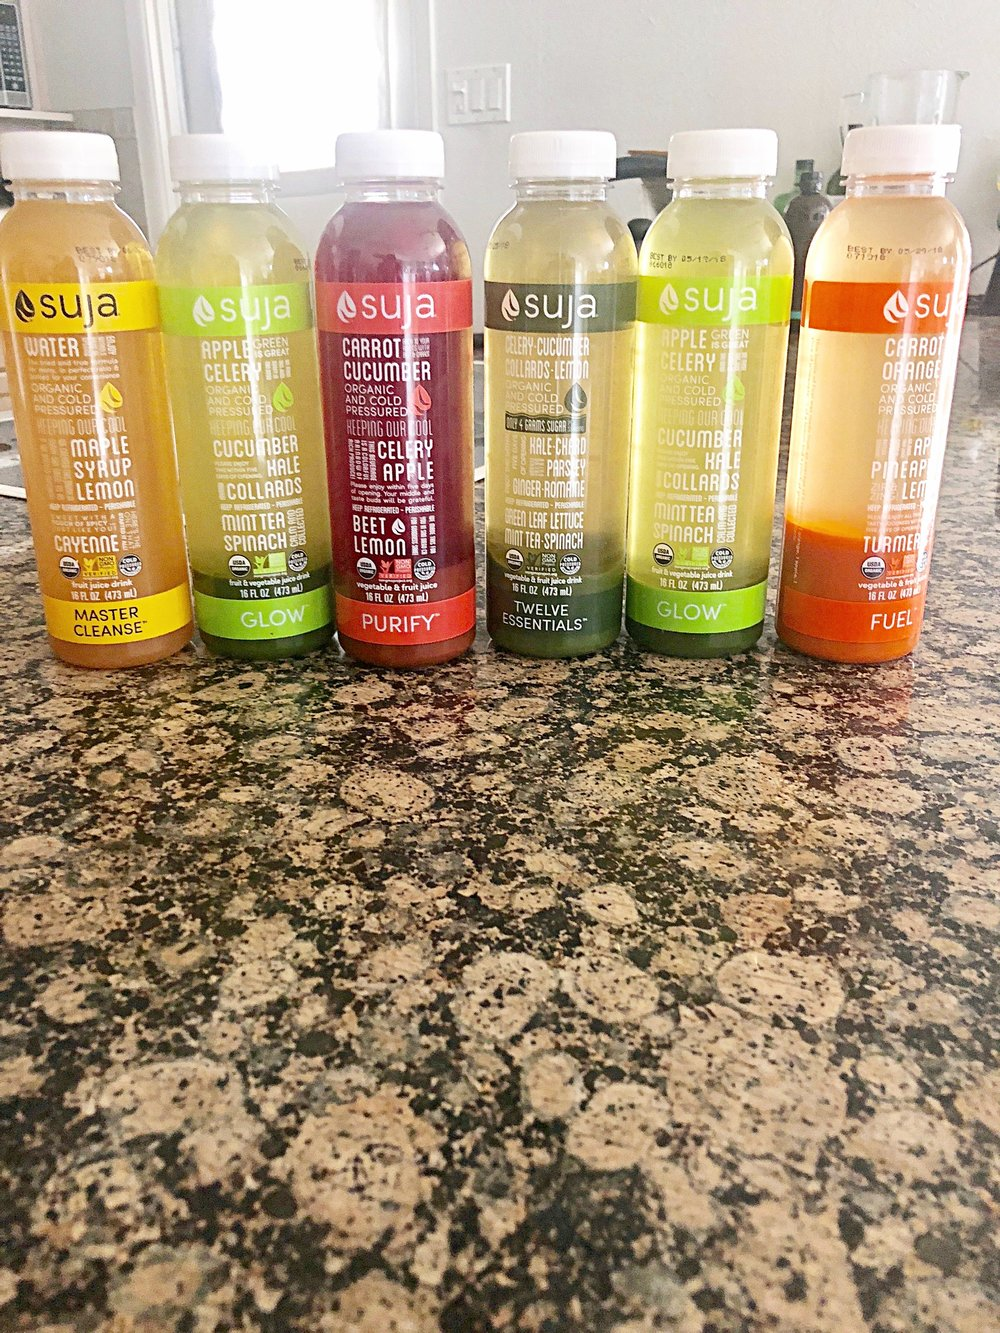 3 Day Cleanse from Suja